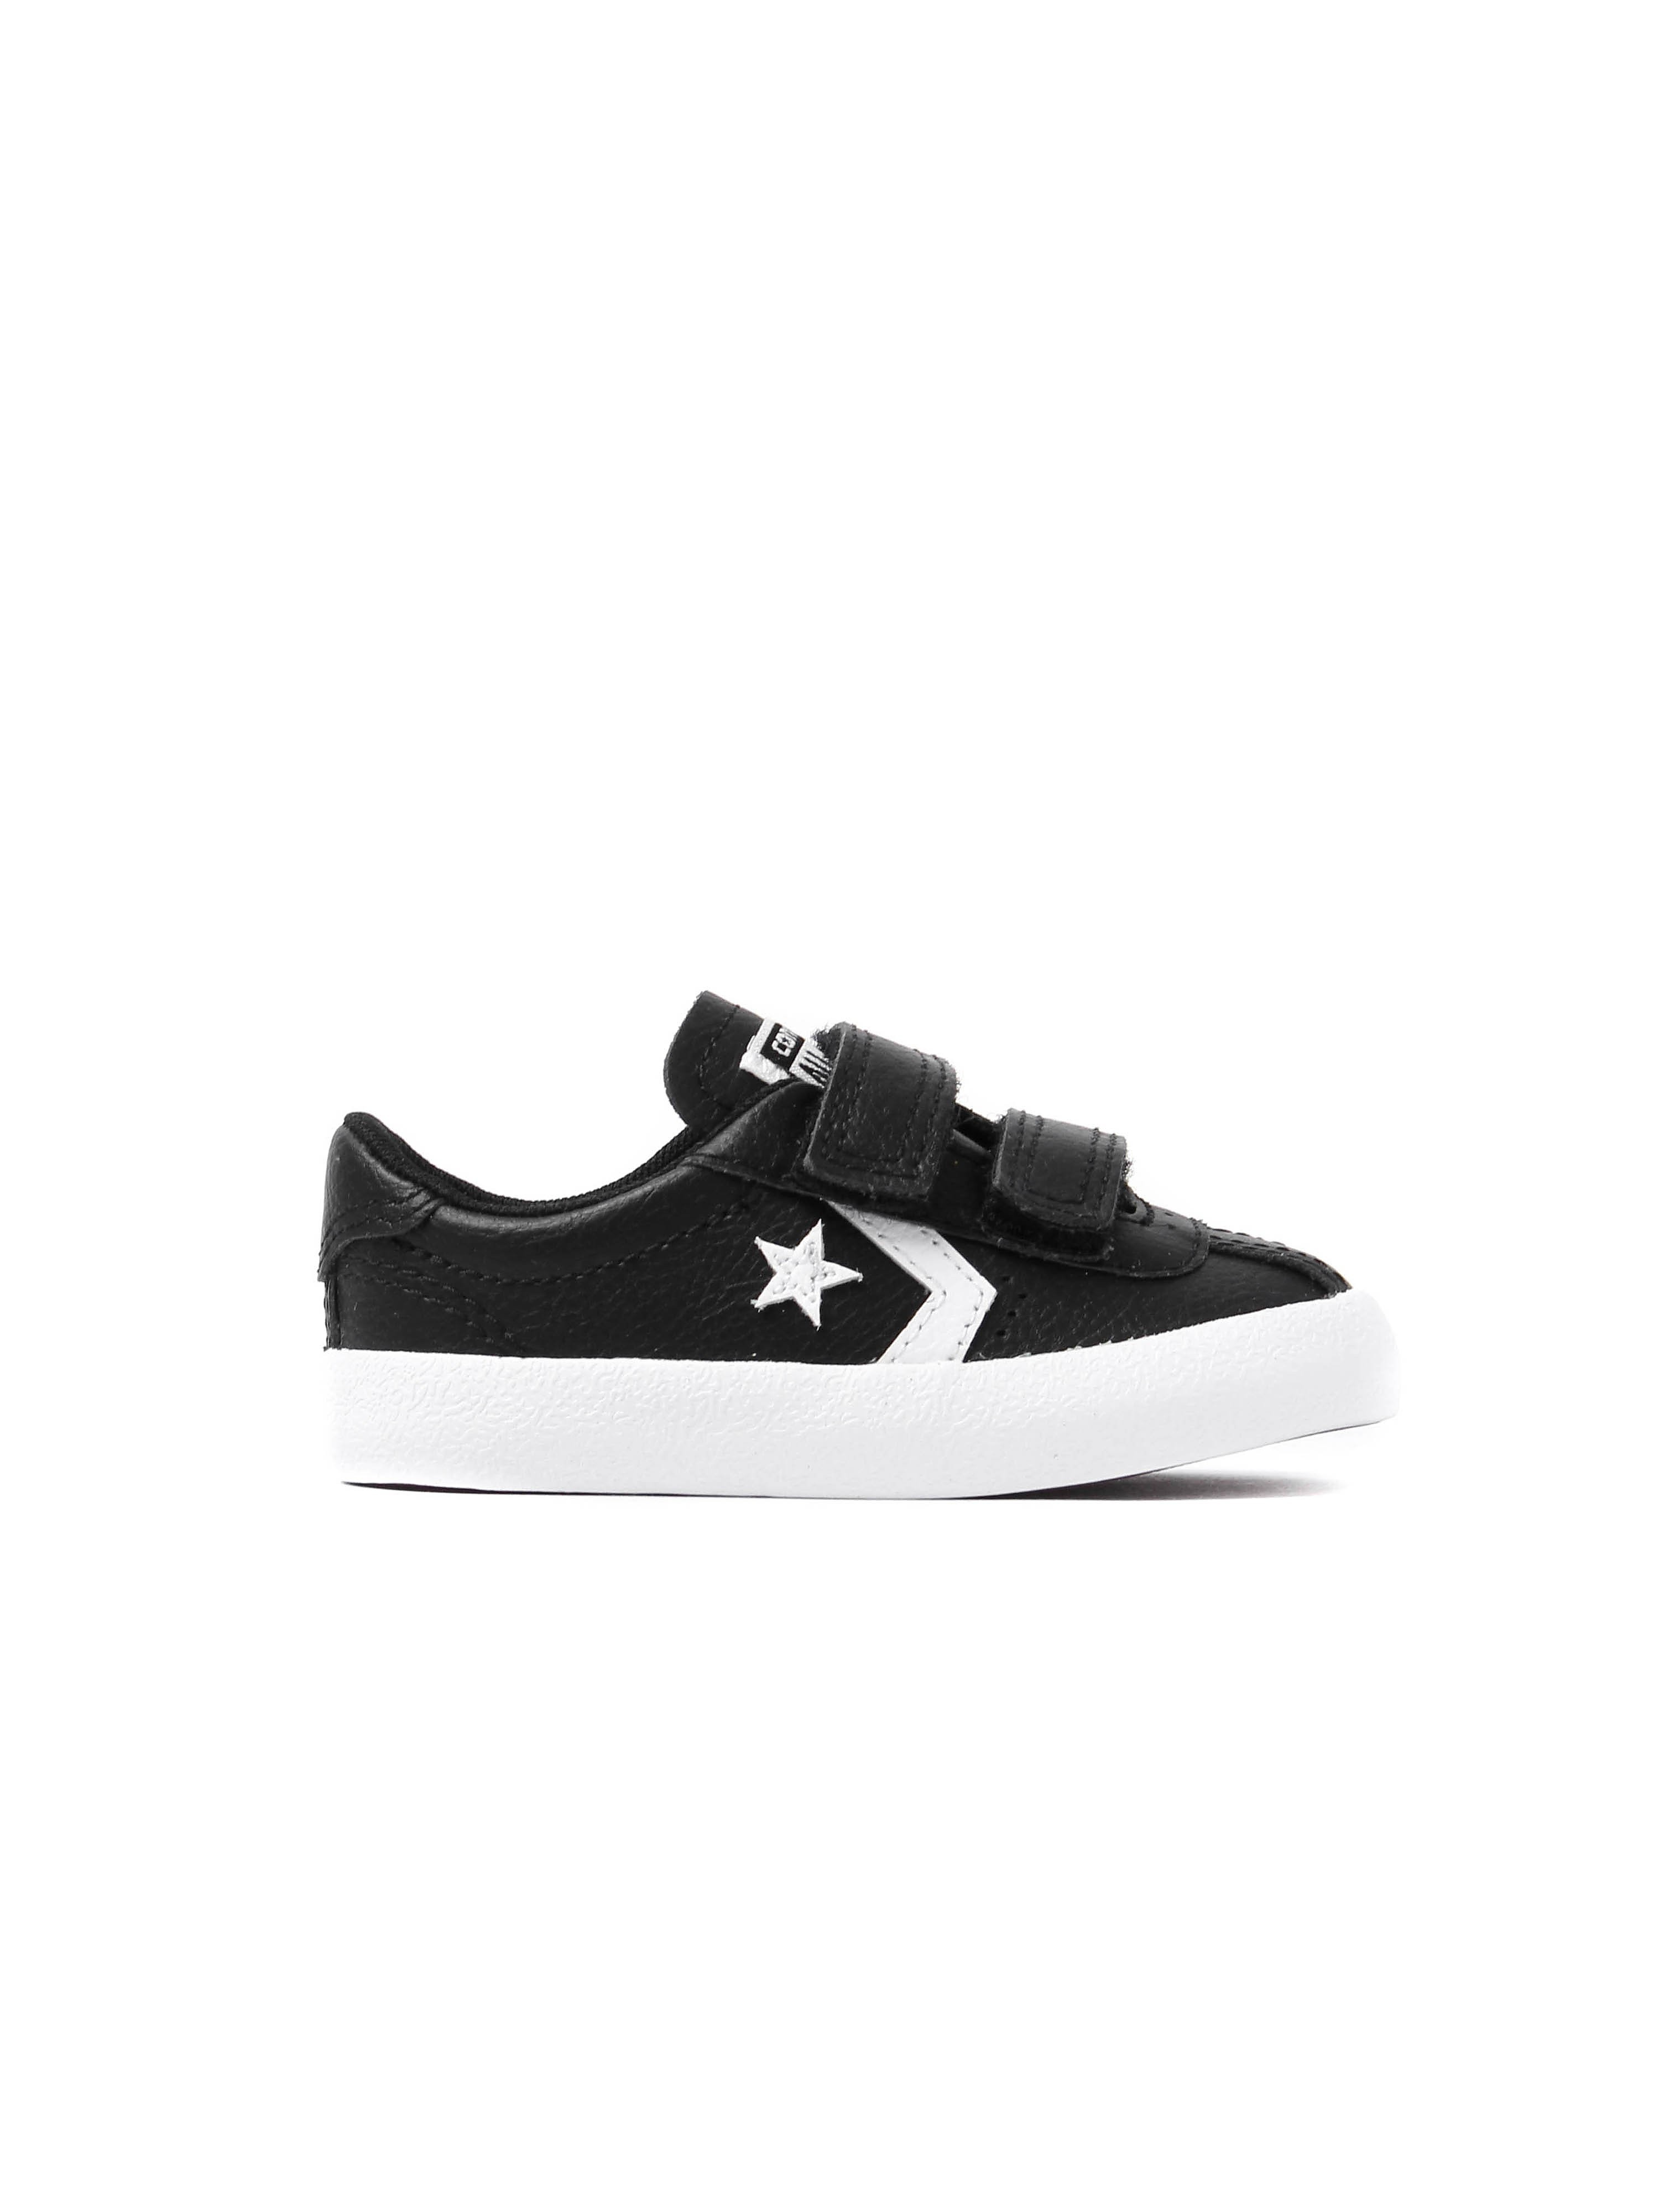 Converse Infants Breakpoint 2V Leather Trainers – Black